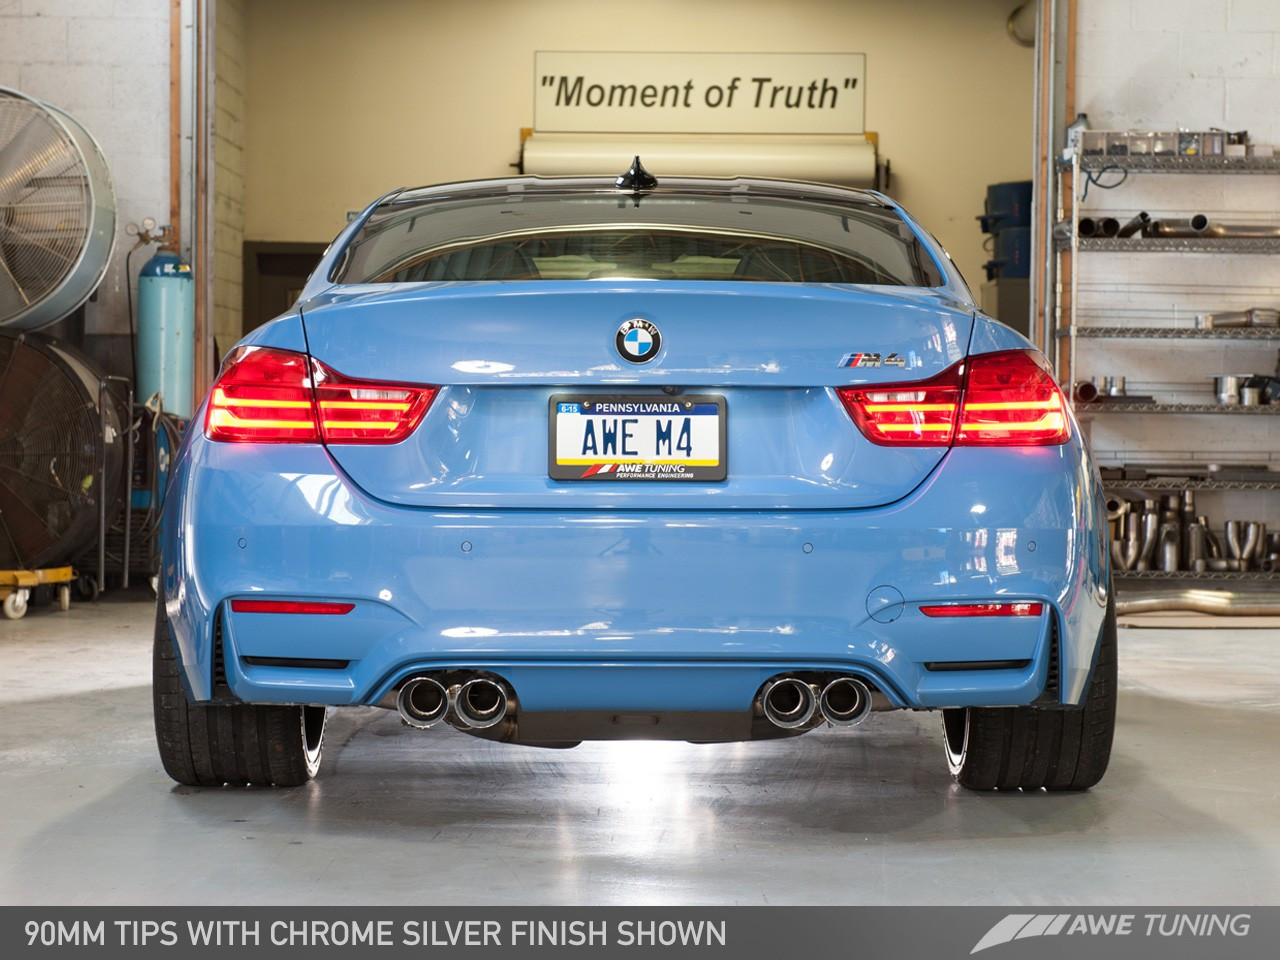 AWE Tuning BMW F8x M4 SwitchPath Exhaust System - 90mm Chrome Silver Tailpipes